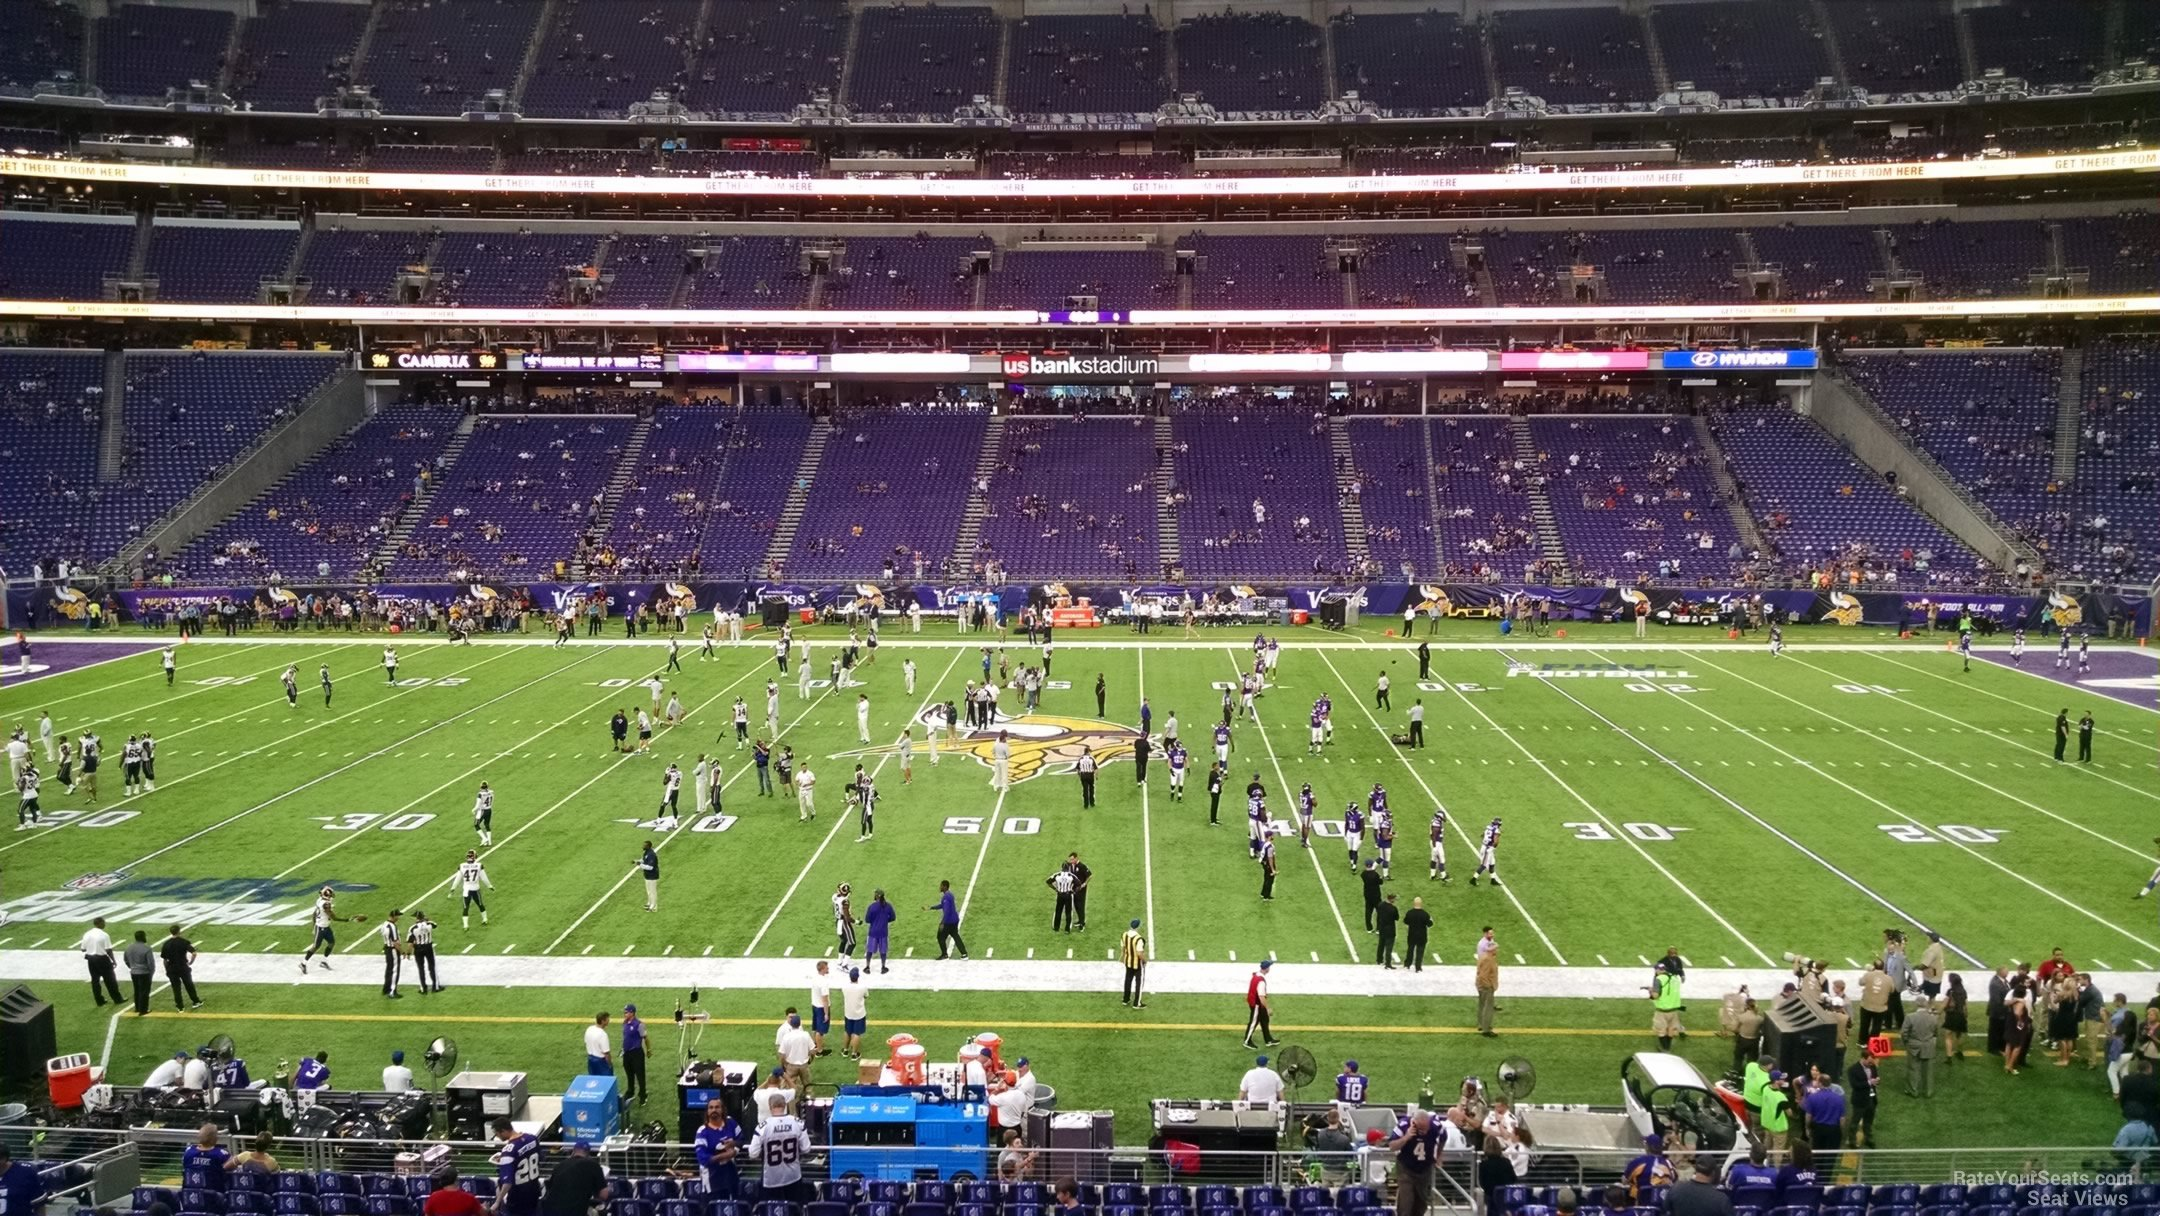 Best Seats For Great Views Of The Field At U S Bank Stadium